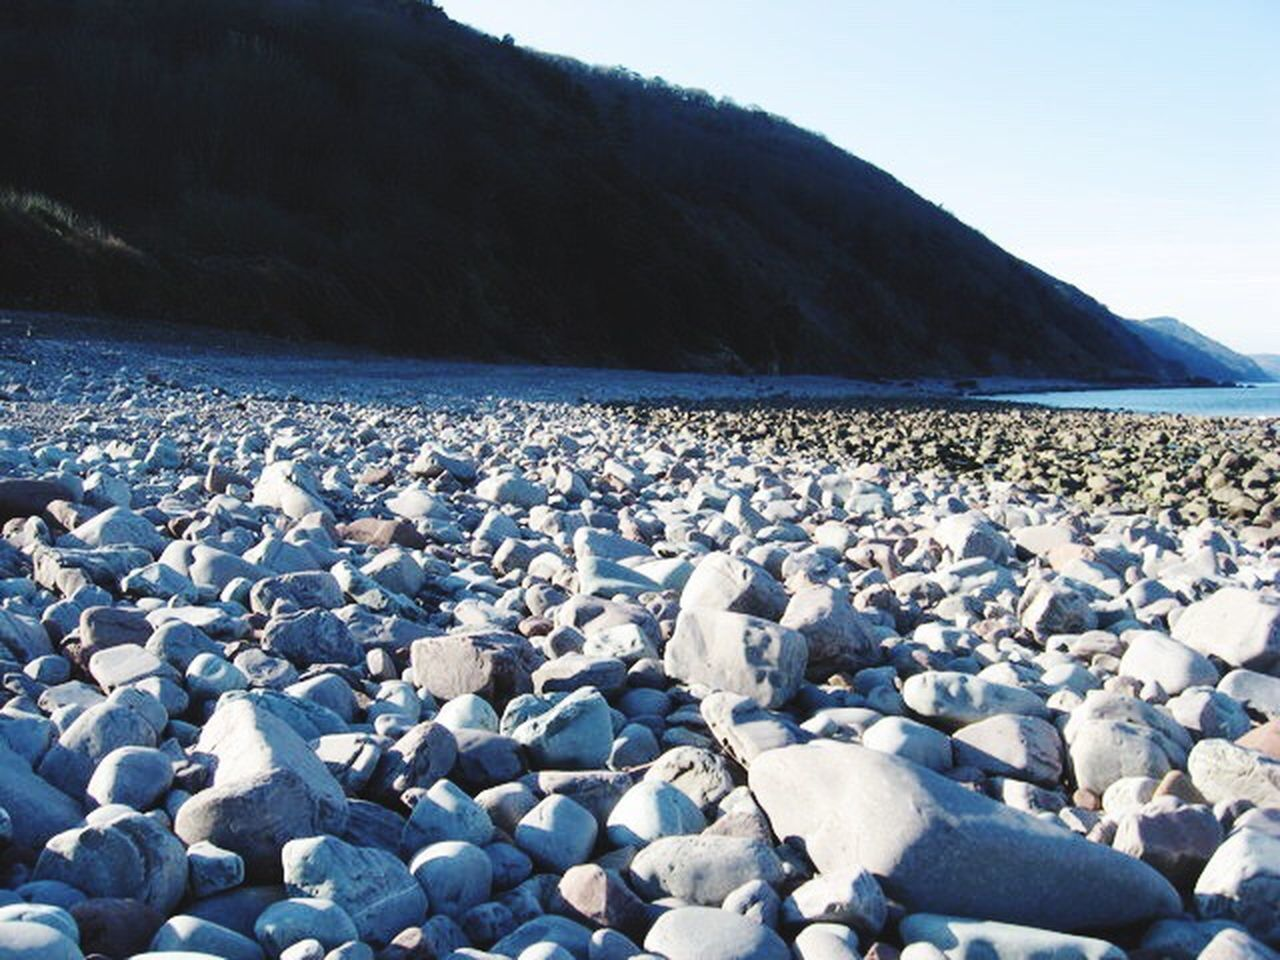 pebble, beach, pebble beach, nature, tranquil scene, outdoors, beauty in nature, day, no people, scenics, water, lake, sky